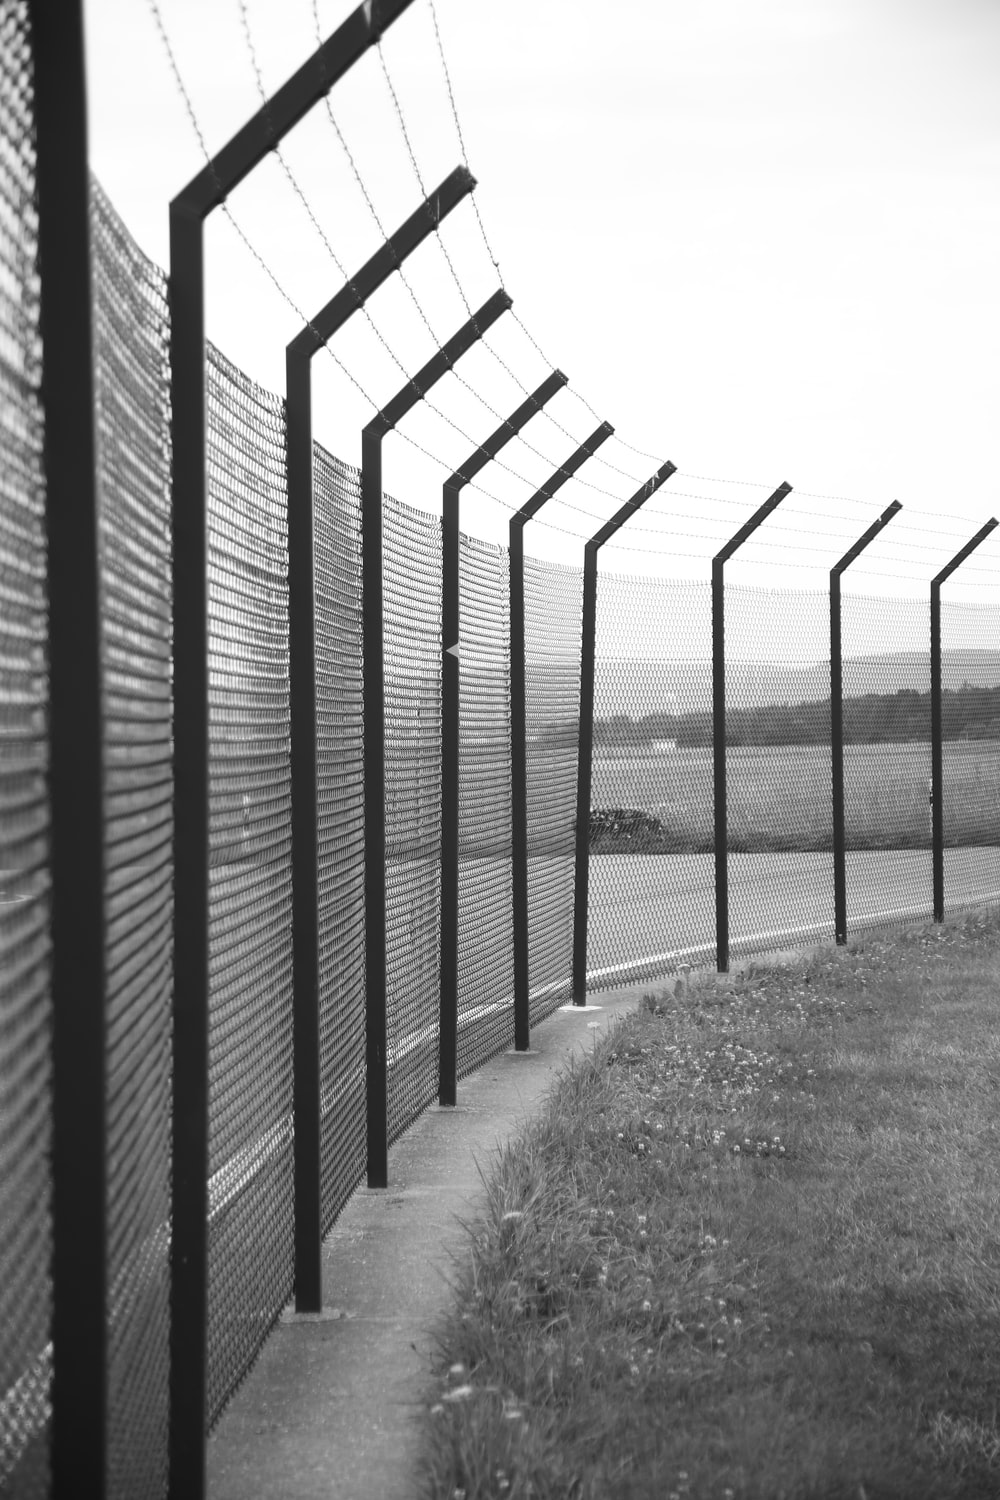 grayscale photo of metal fence